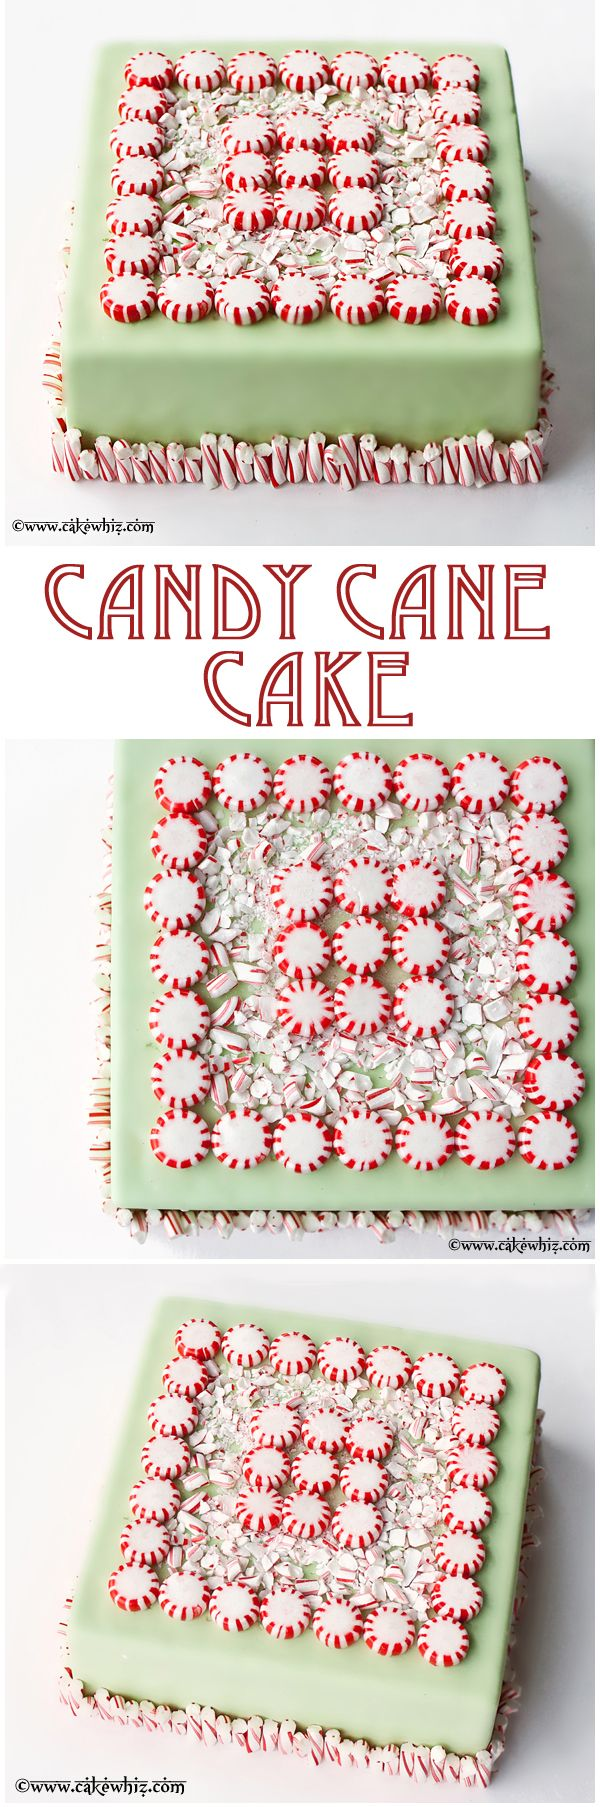 CANDY CANE CAKE... This stunning and delicious cake will blow your guests away! It's also a great way to use up all those Christmas candies! From cakewhiz.com